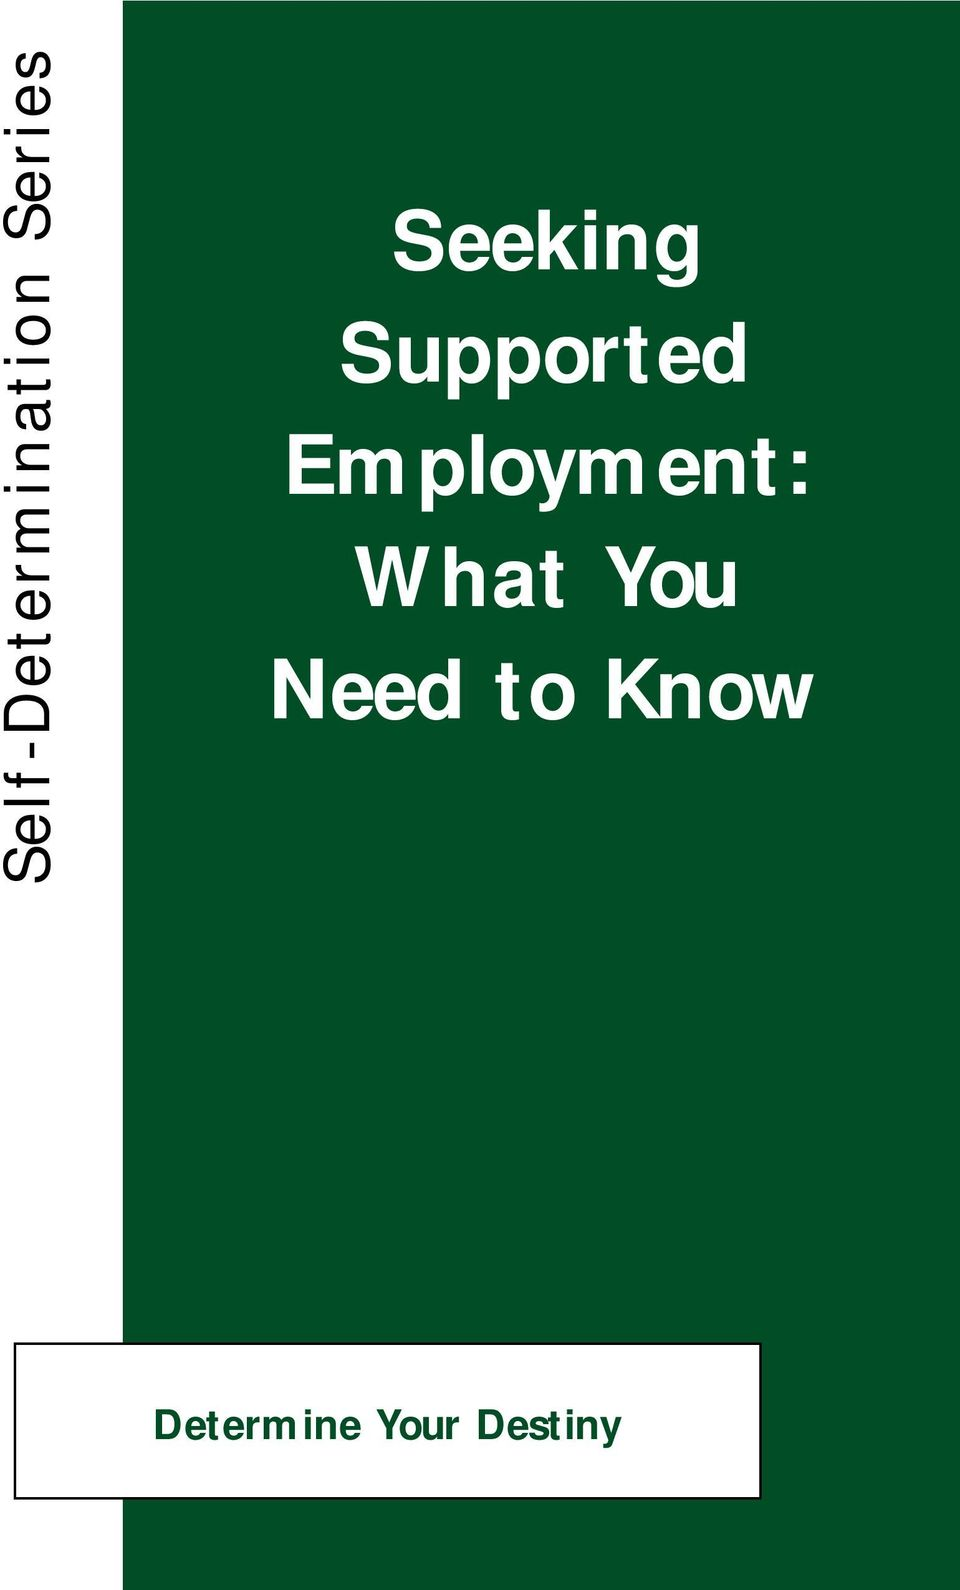 Employment: What You